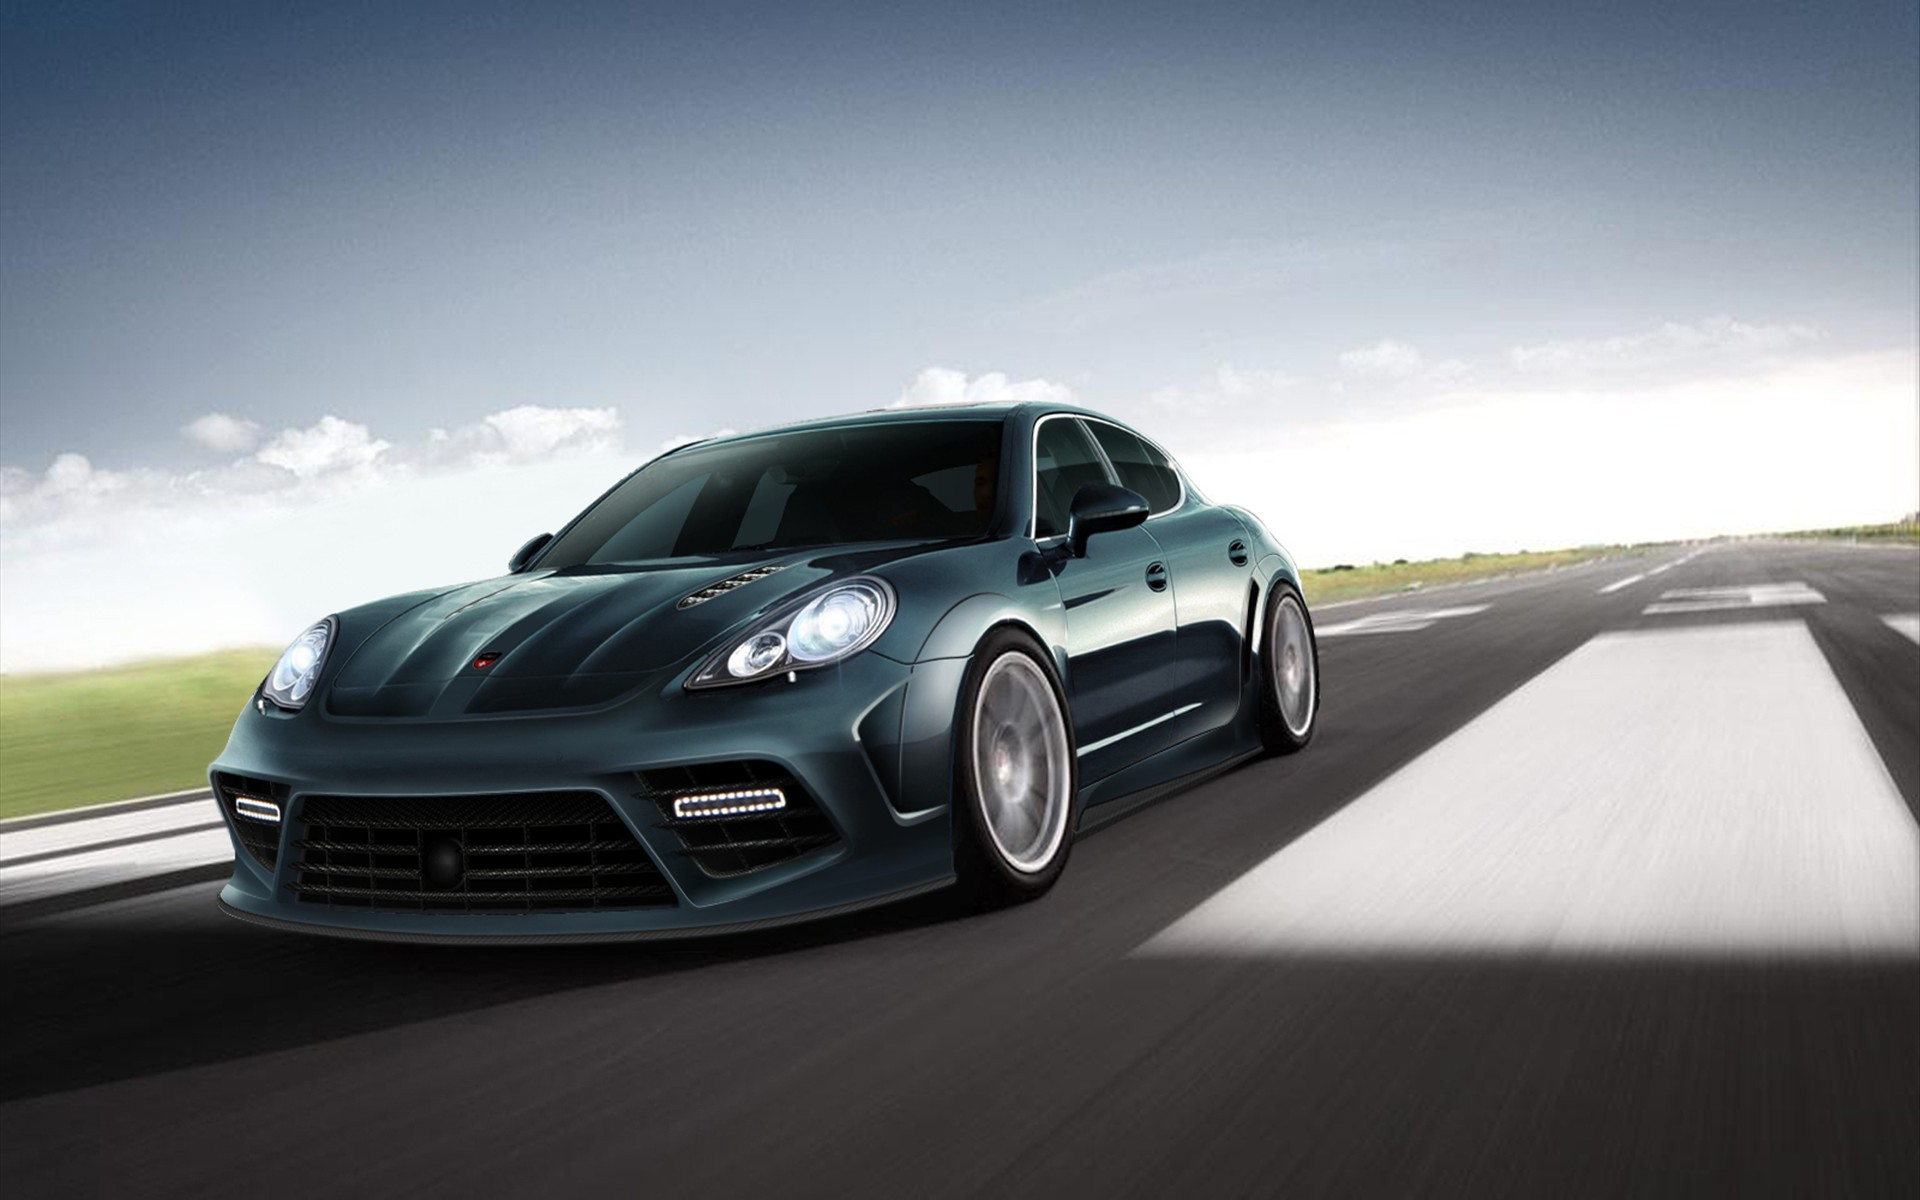 Porsche Panamera Wallpaper HD Desktop